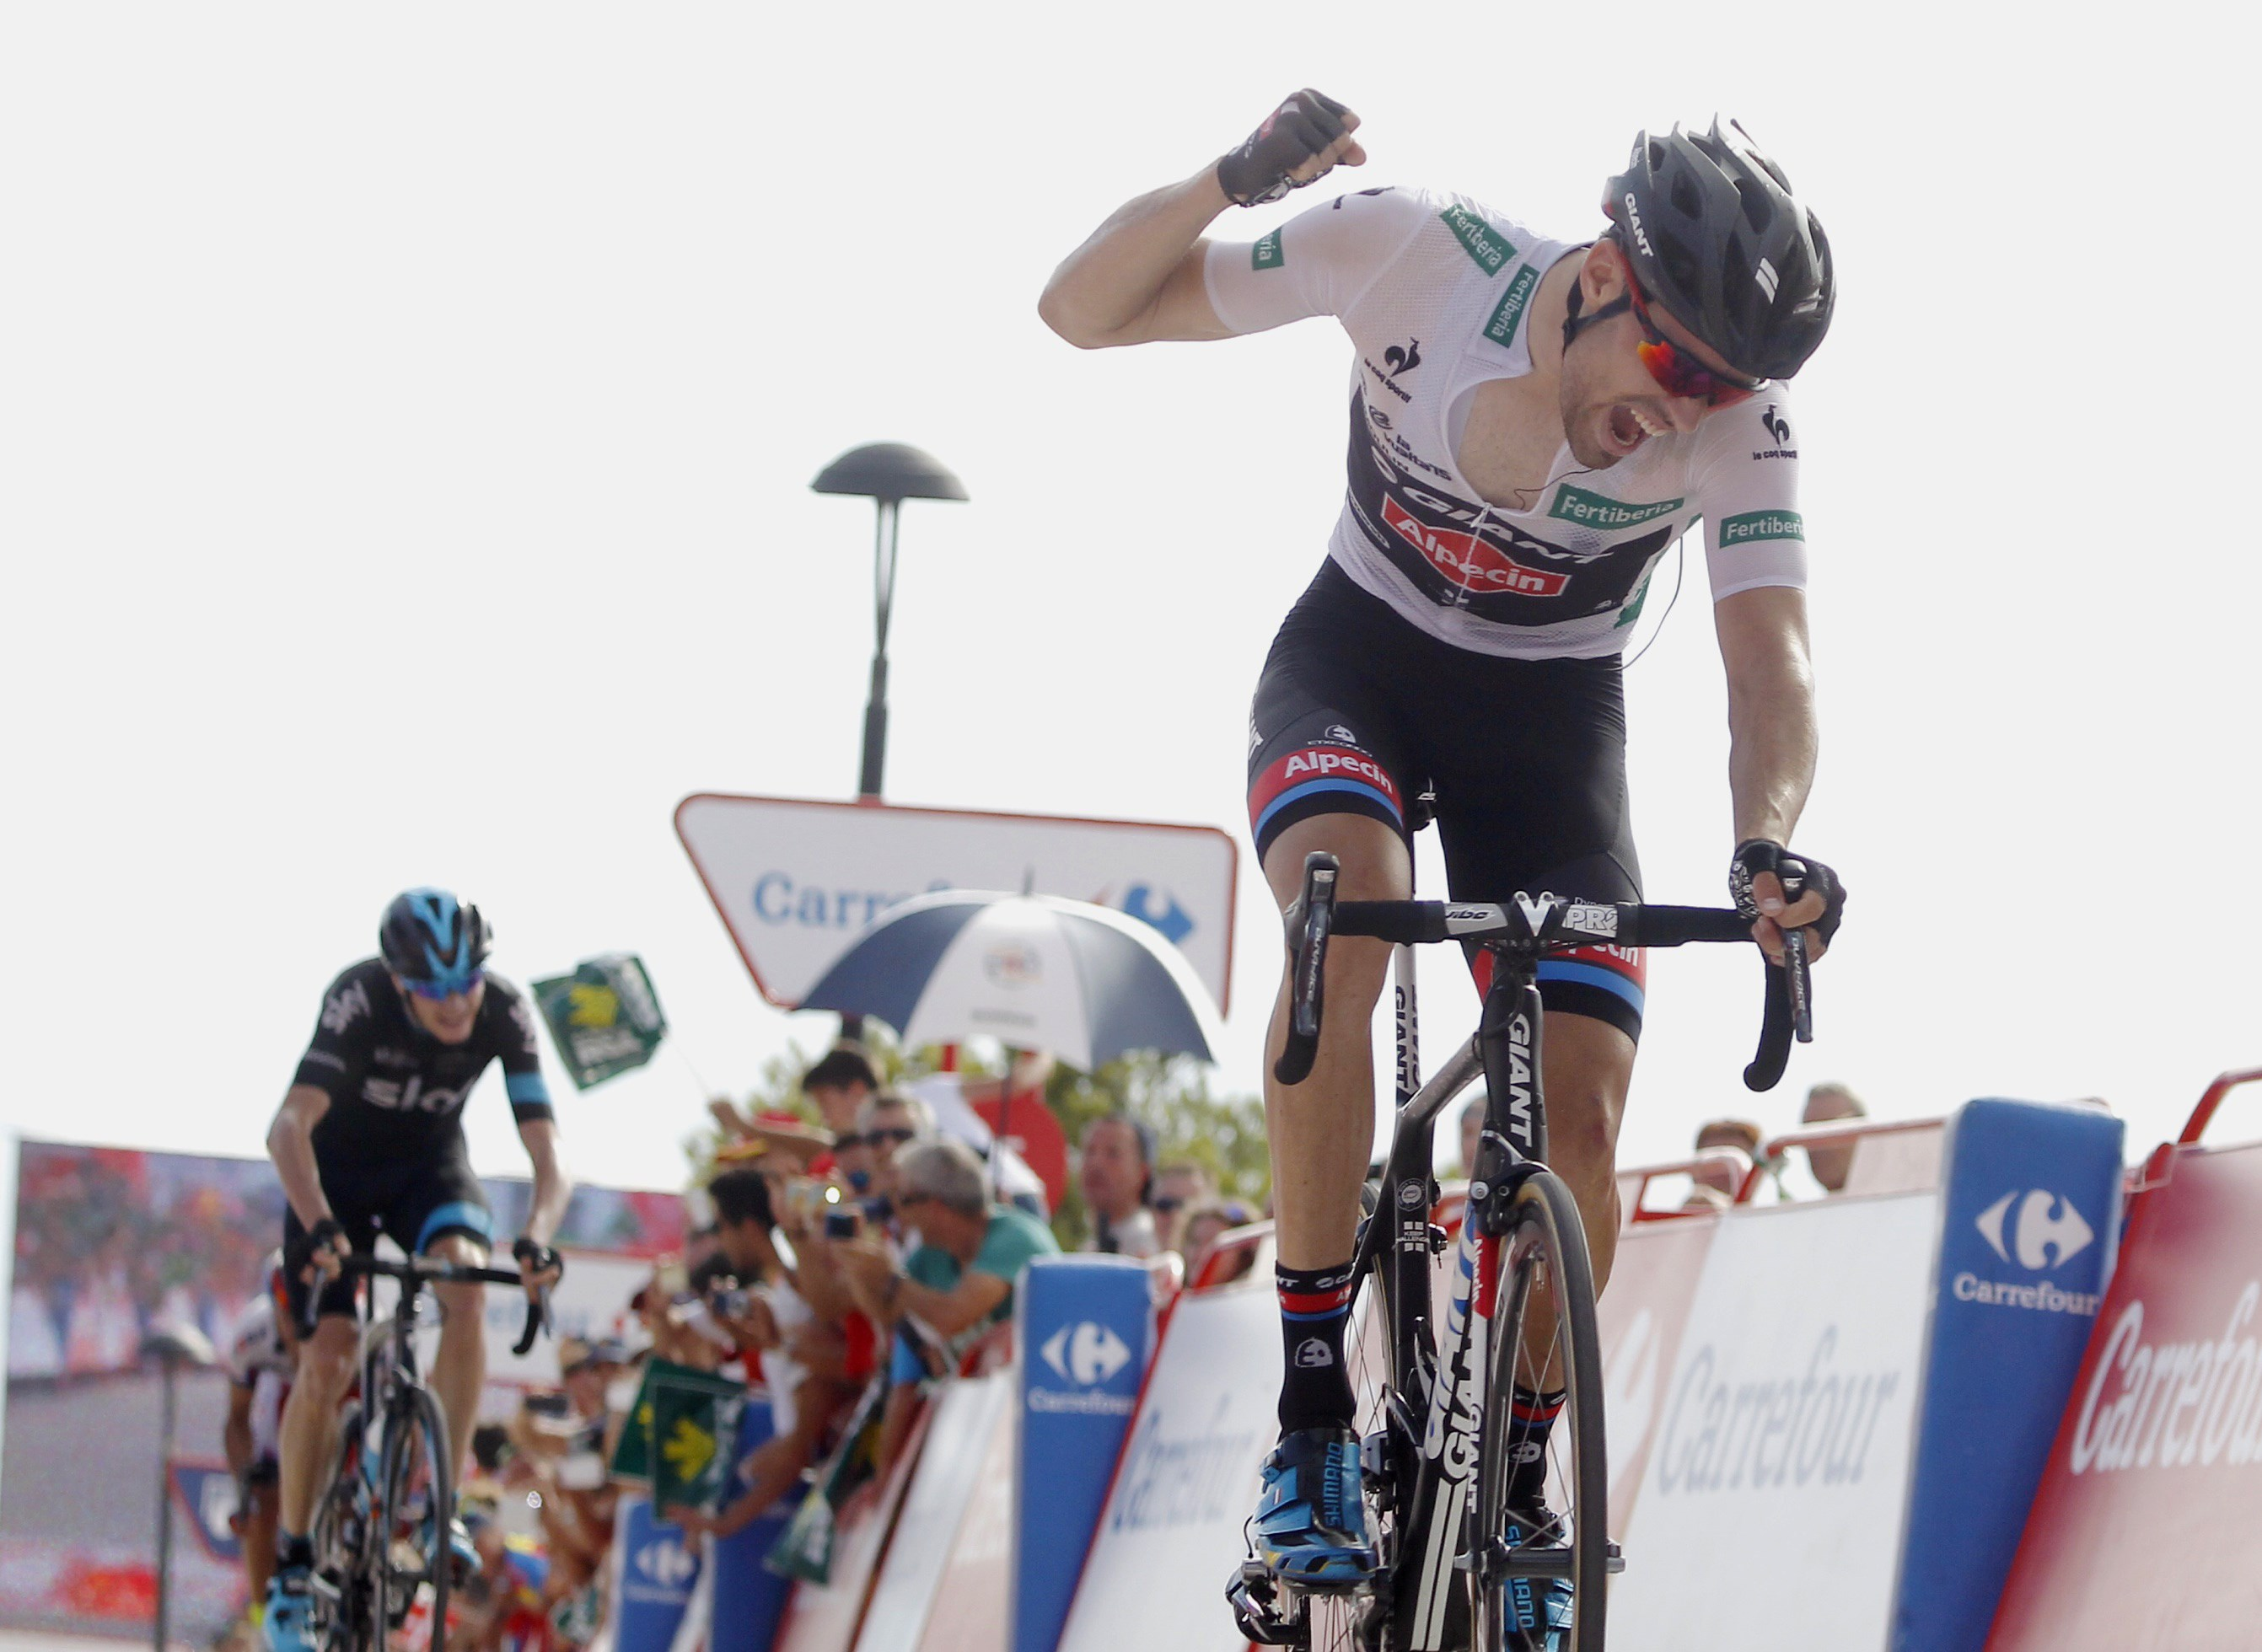 Dumoulin punches the air after winning stage 9.